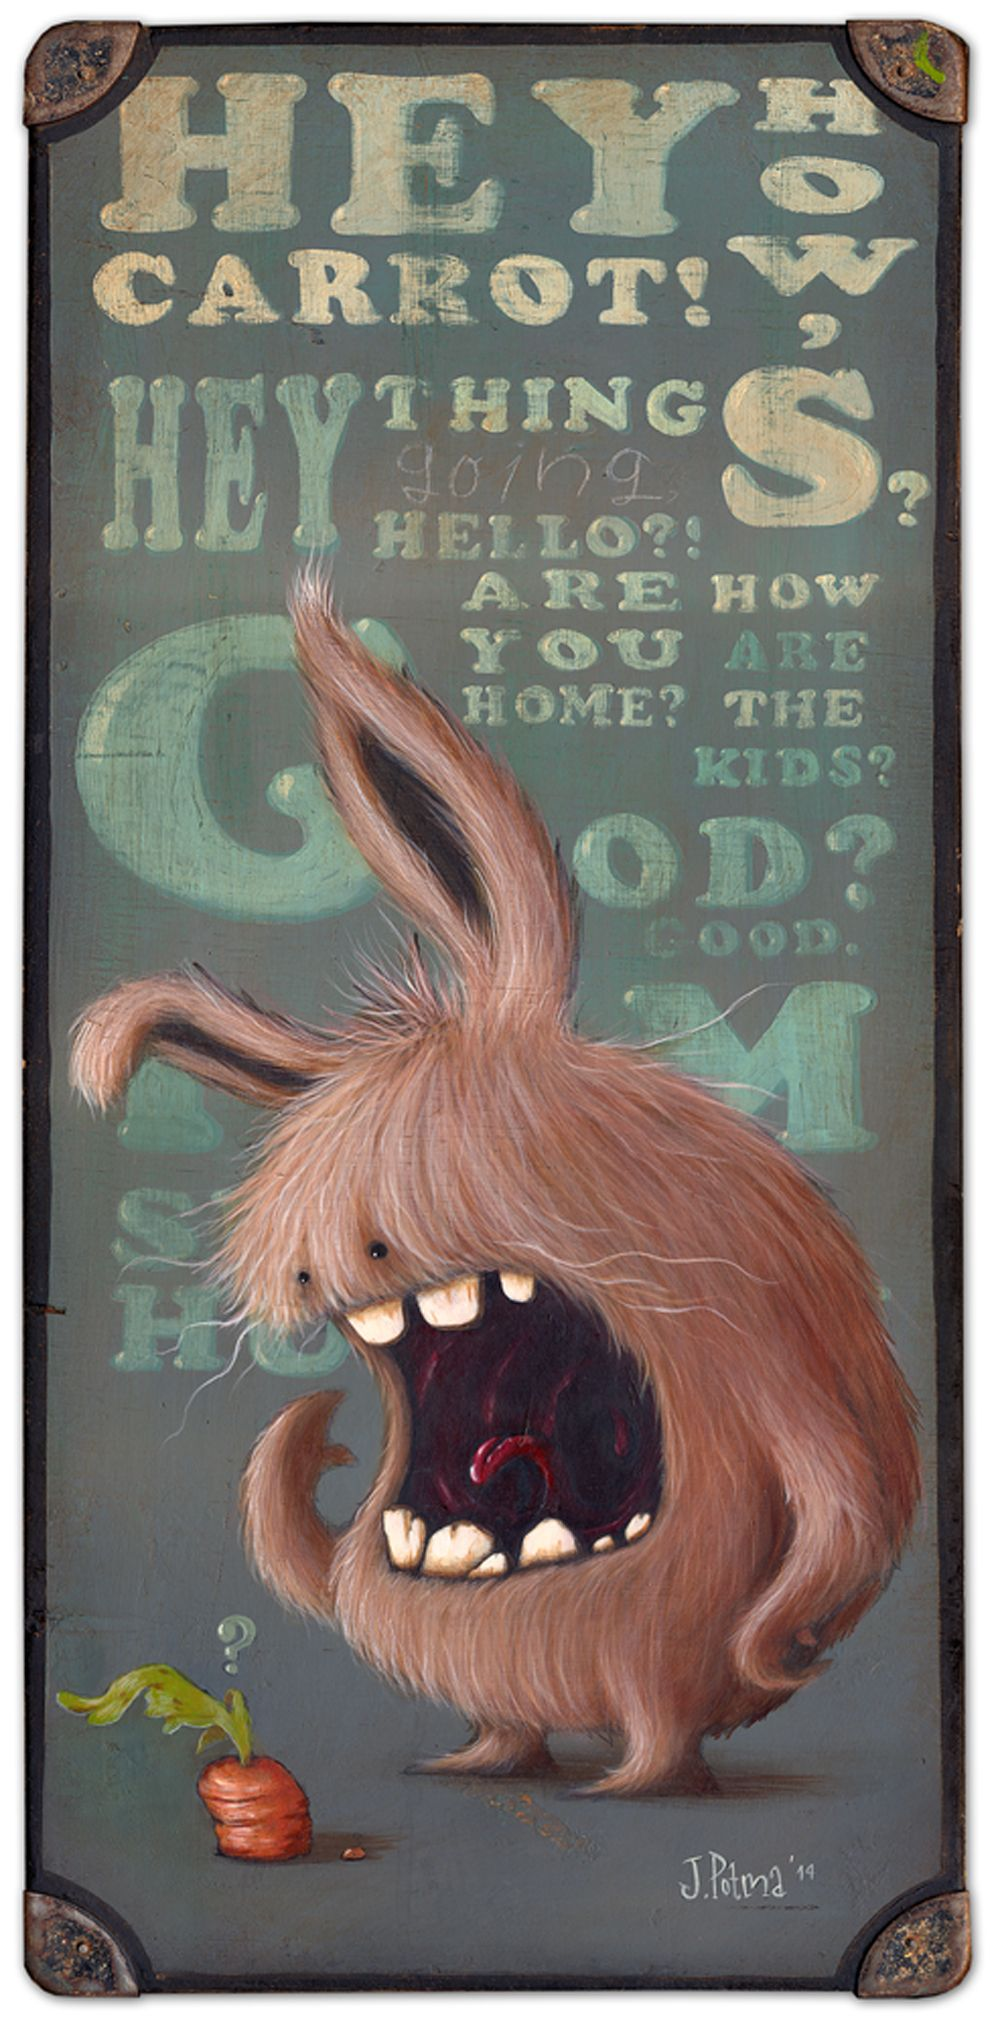 Pin by RADEGAST on Цртање ! | Pinterest | Monsters and Illustrations